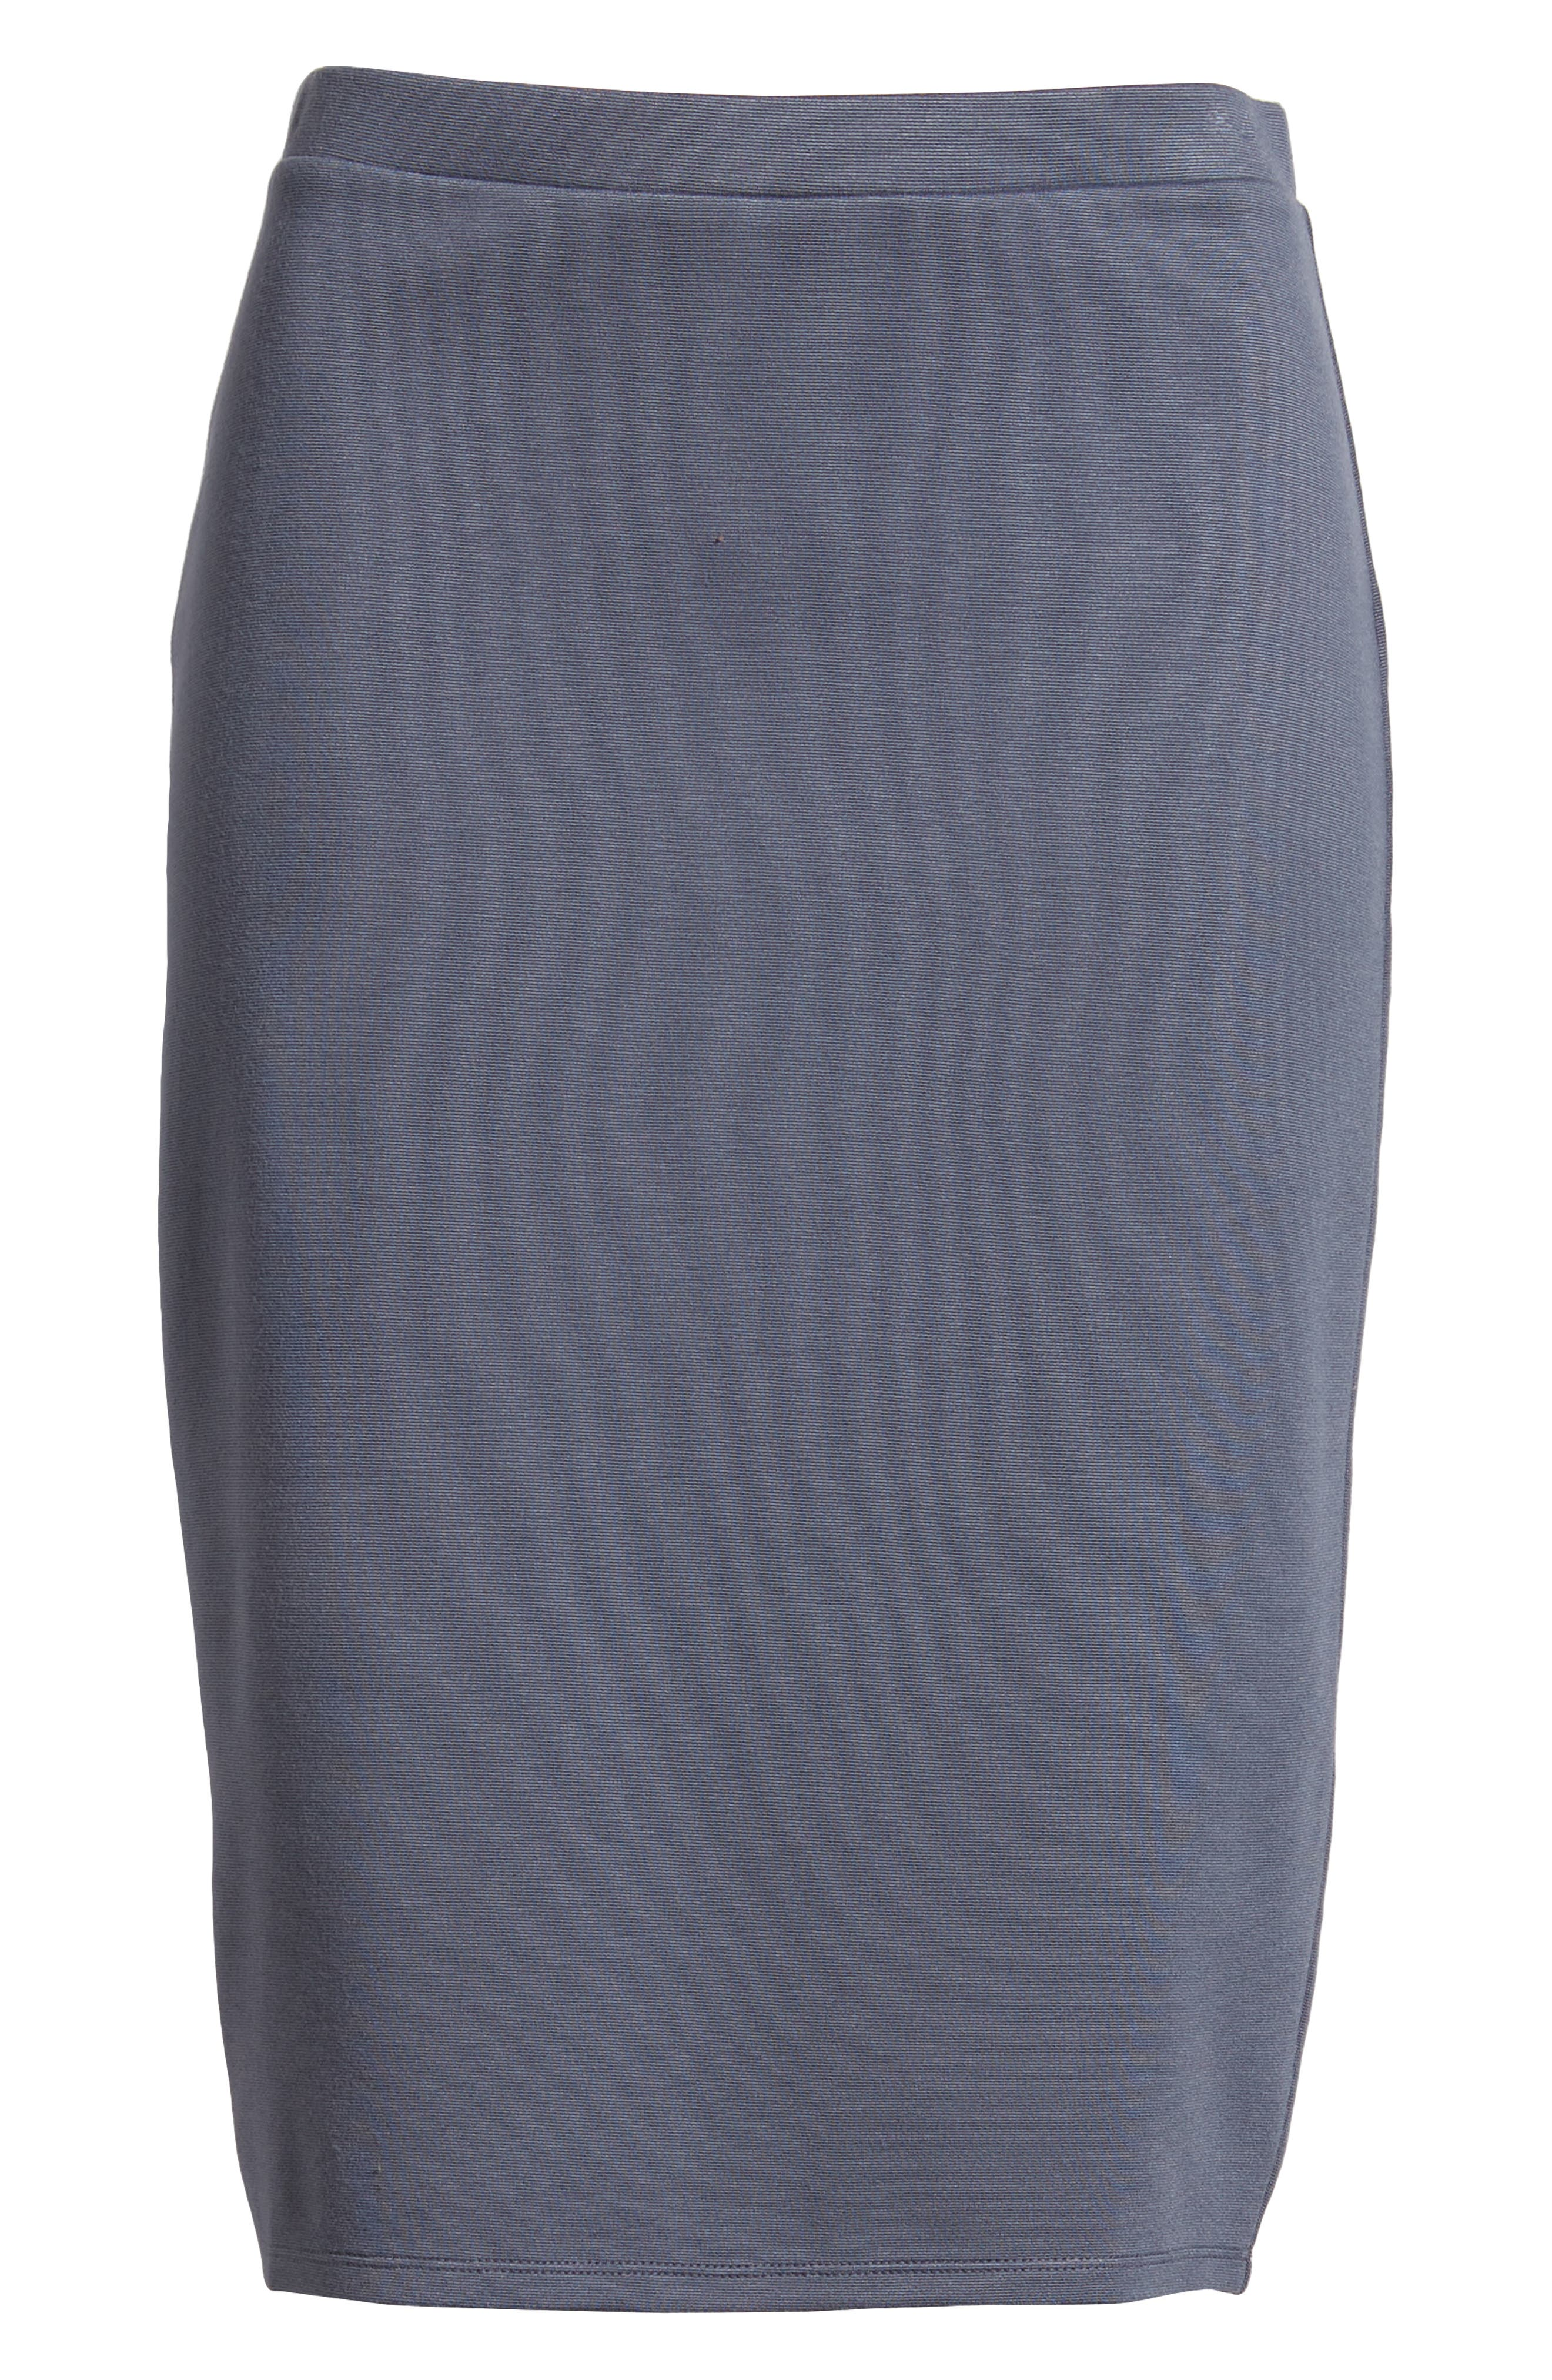 Pencil Skirt,                             Alternate thumbnail 6, color,                             GREY GRISAILLE